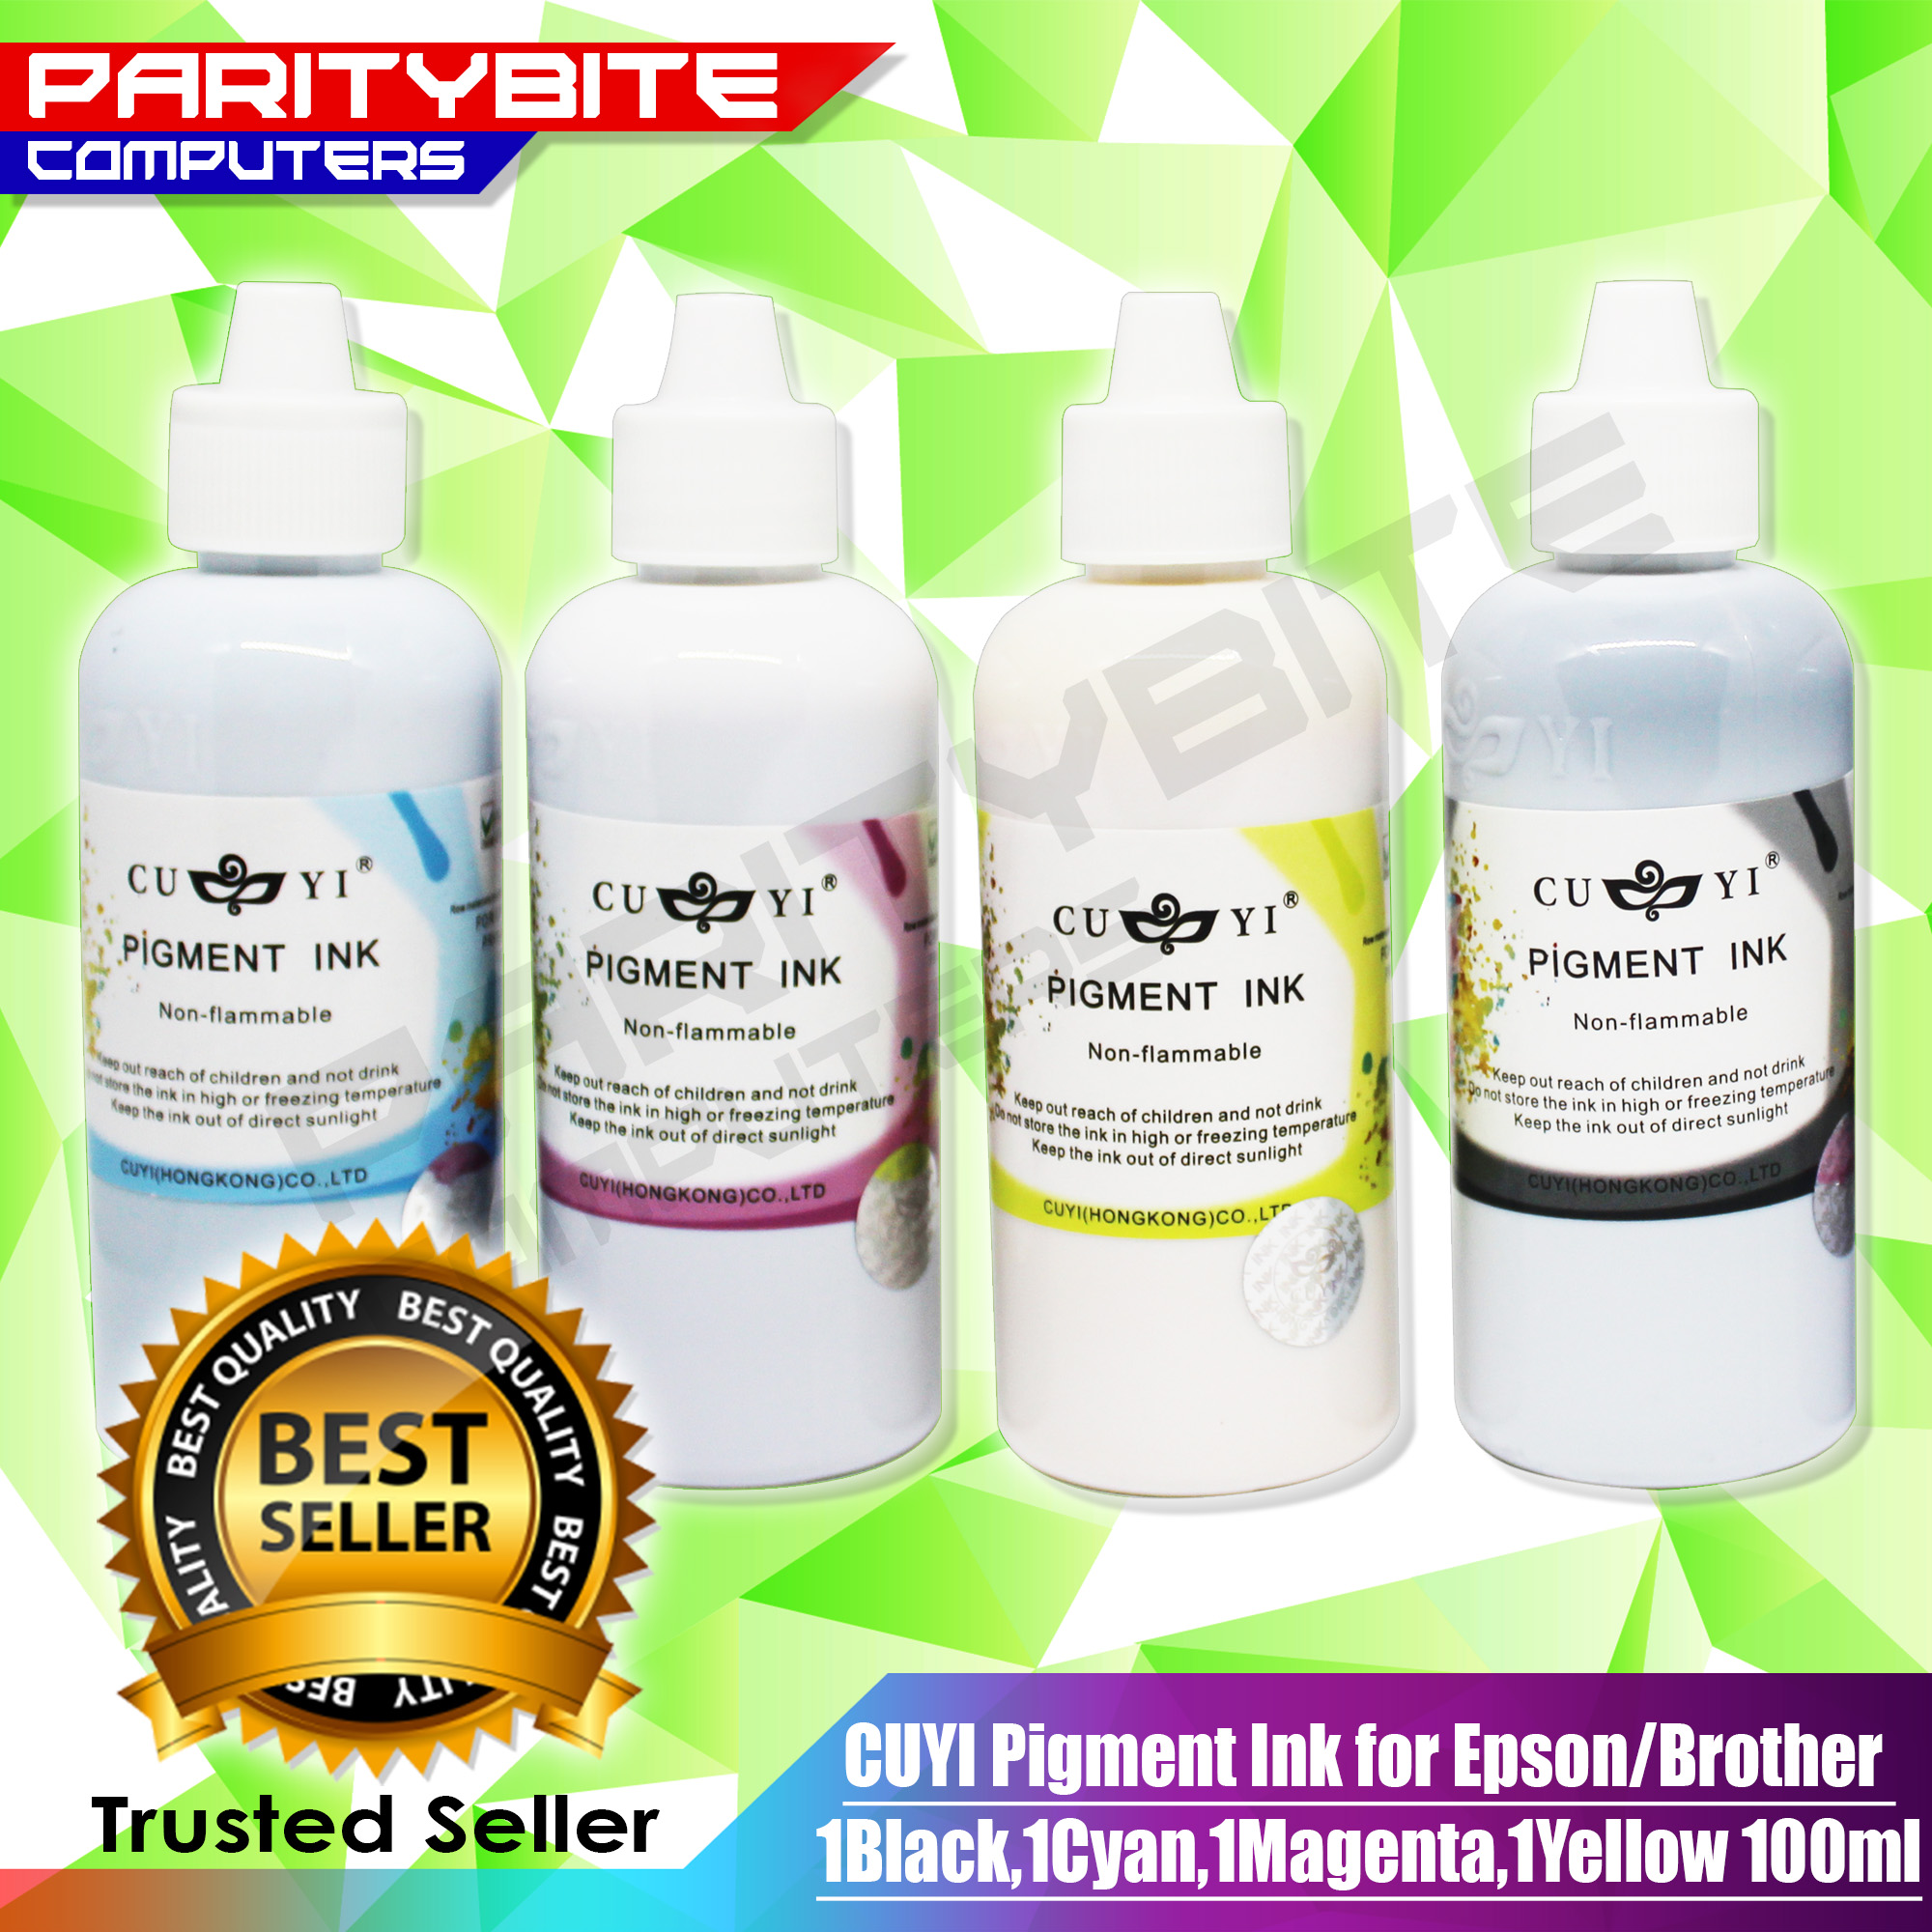 CUYI Pigment Ink for Epson/Brother 1Black,1Cyan,1Magenta,1Yellow 100ml